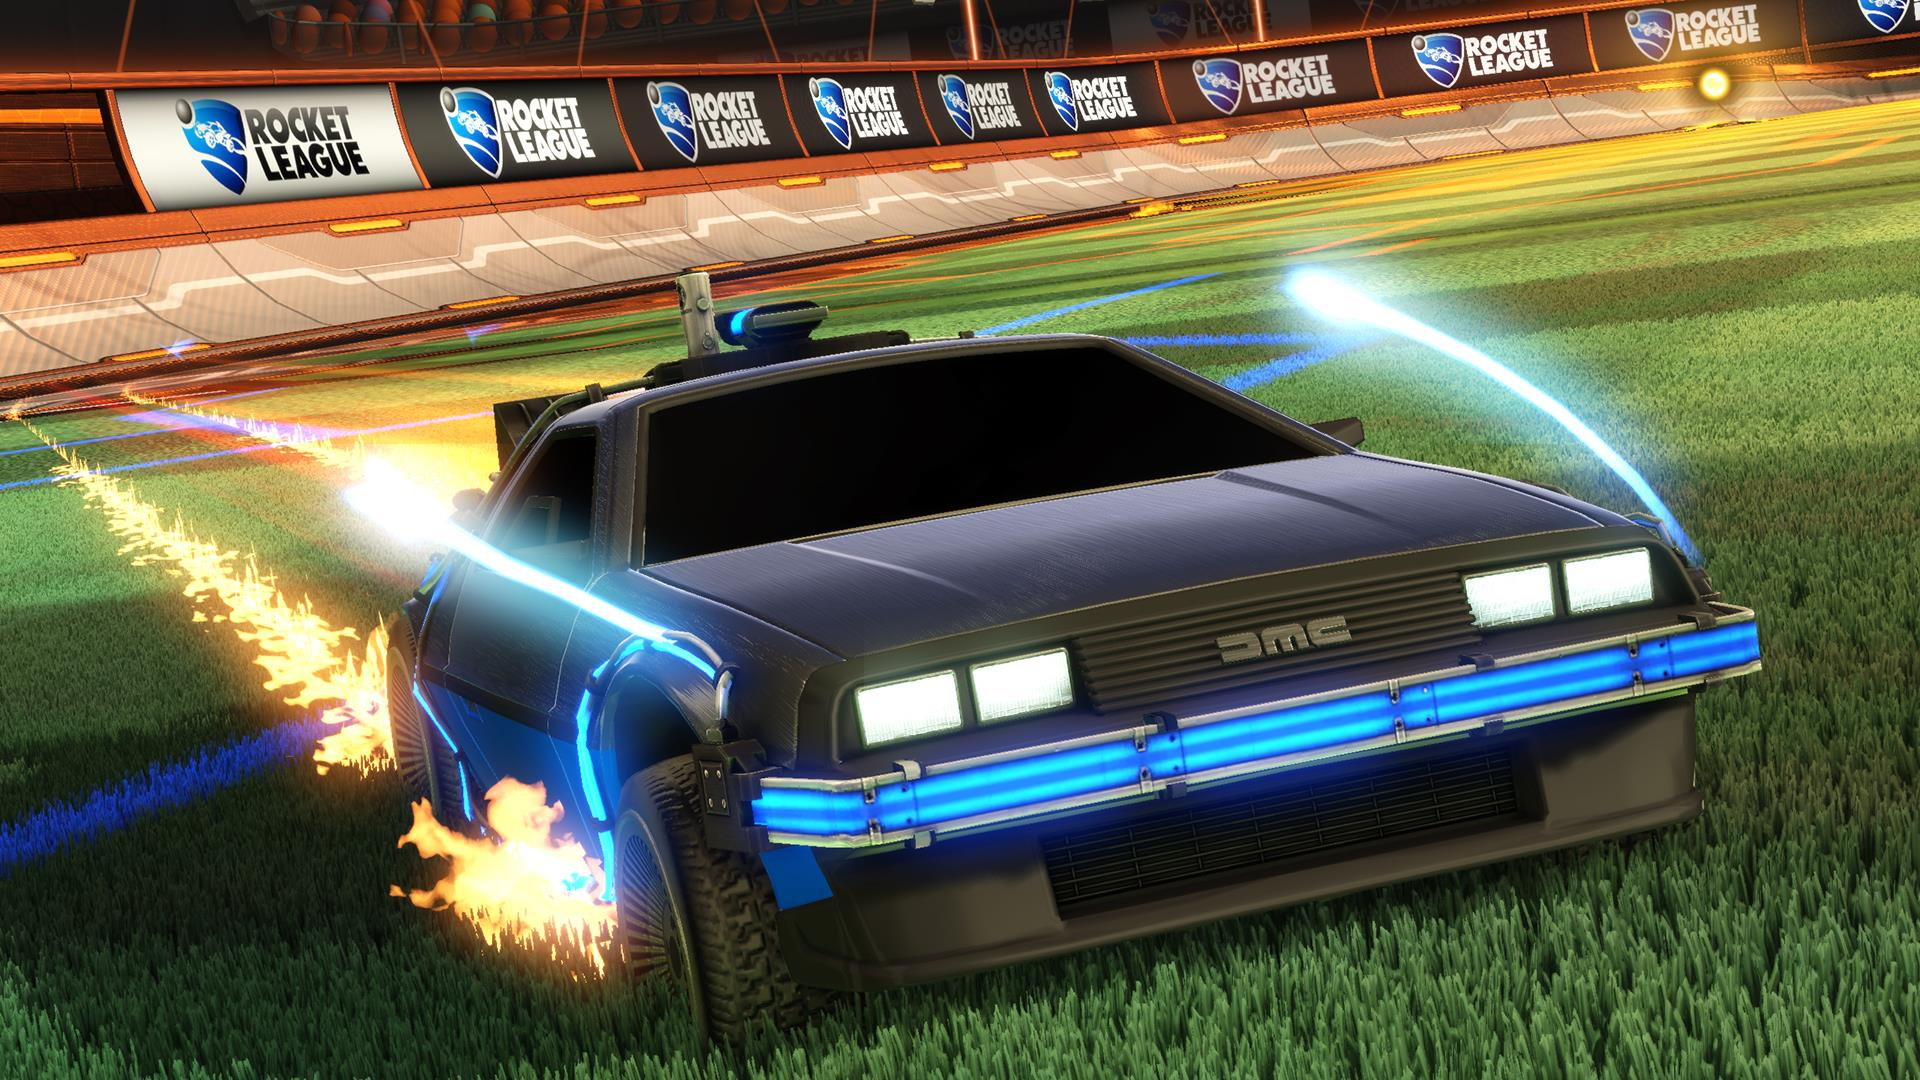 Rocketleague Garage Rocket League Is Getting Back To The Futures Delorean